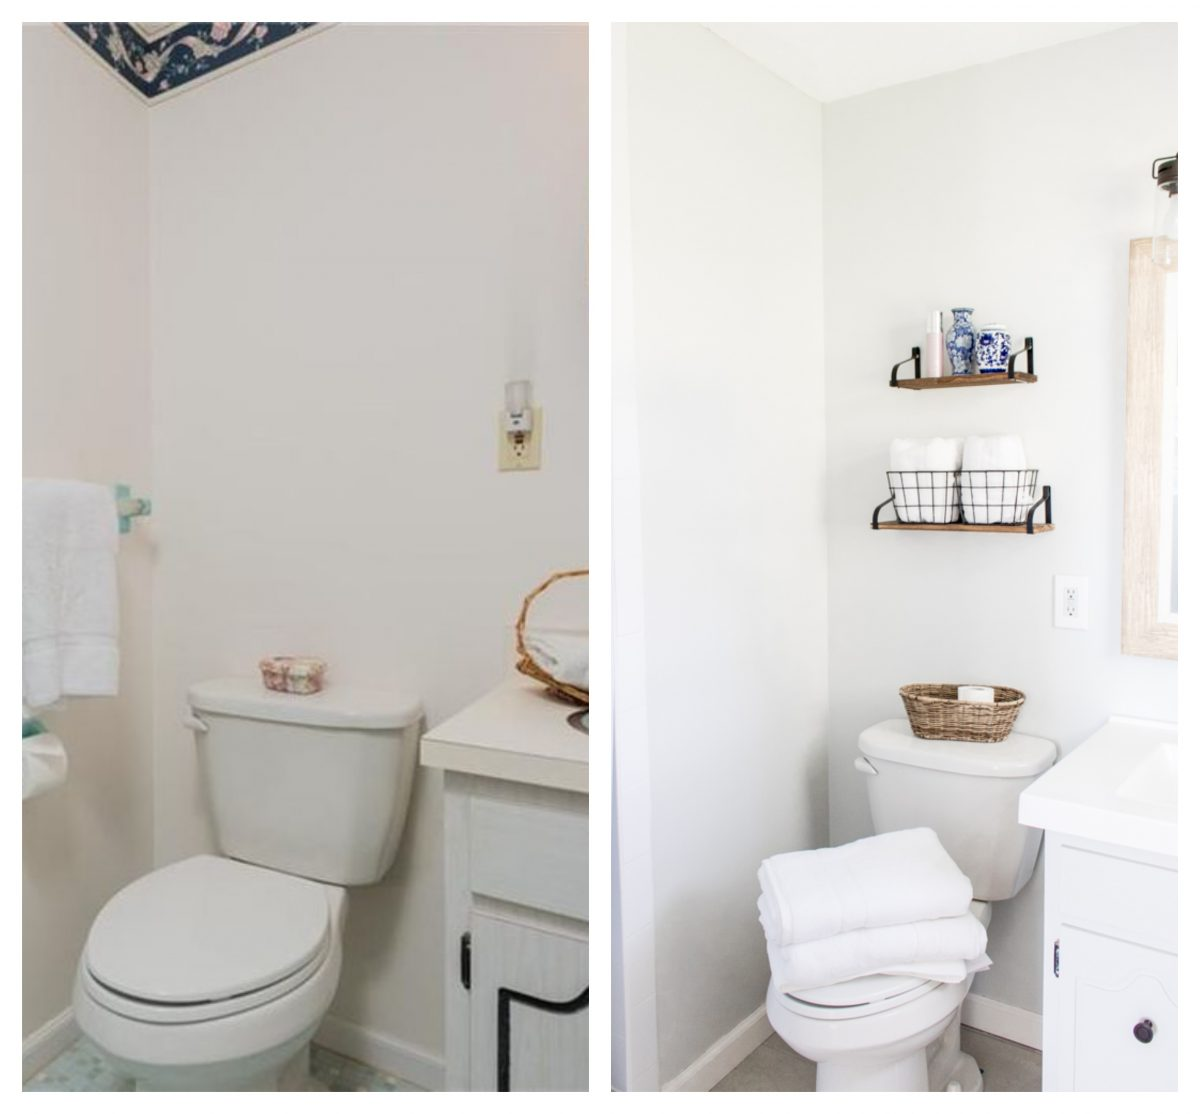 Small Bathroom Before and After Fresh Paint - 5 Ways to Update an Old House